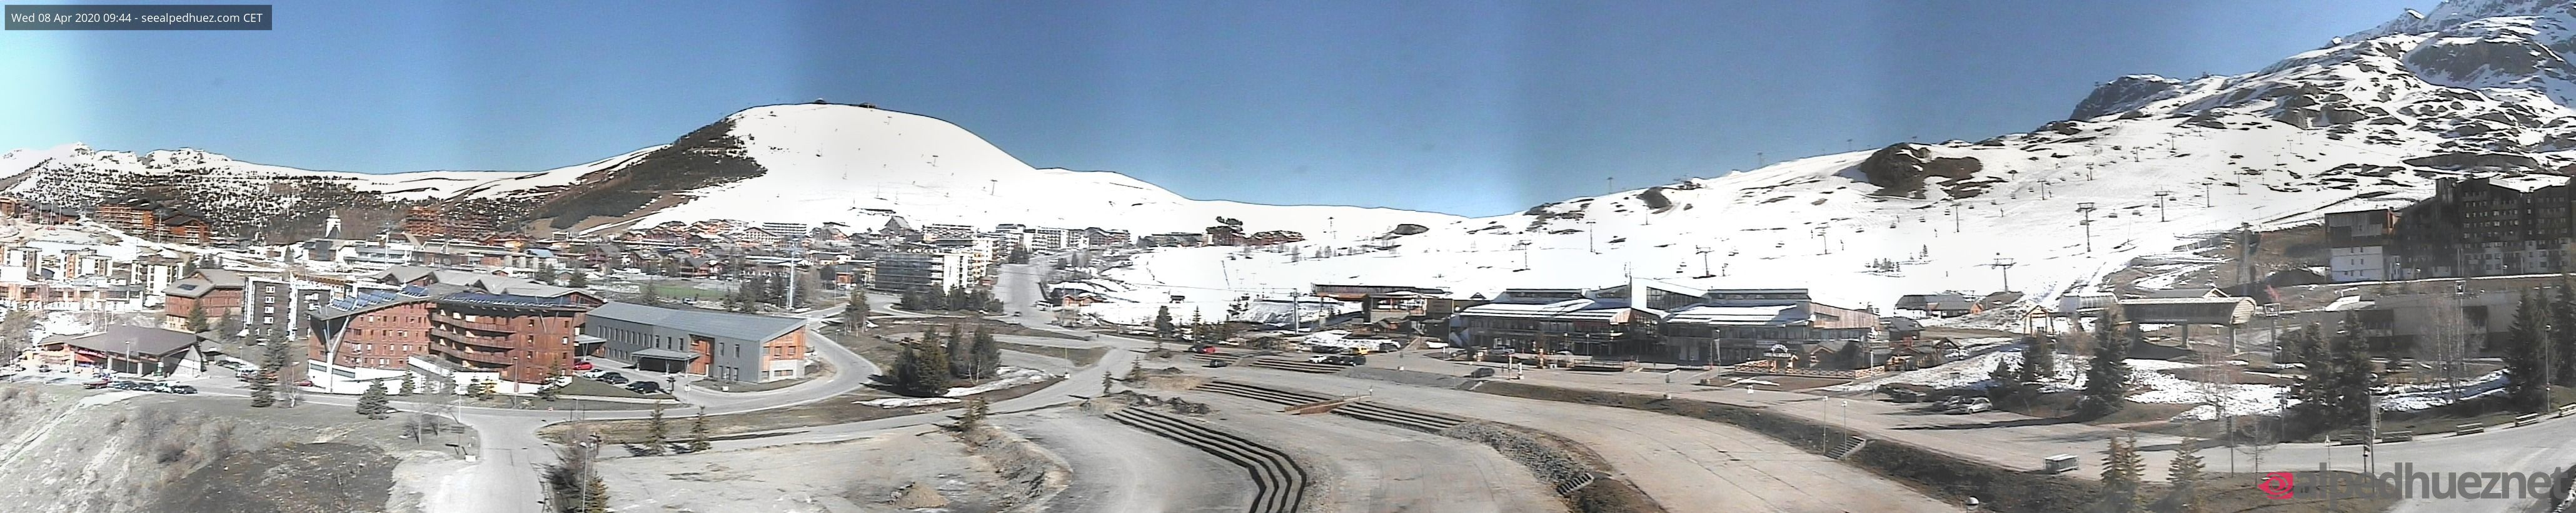 Webcam Alpes d'Huez : panoramique de la station